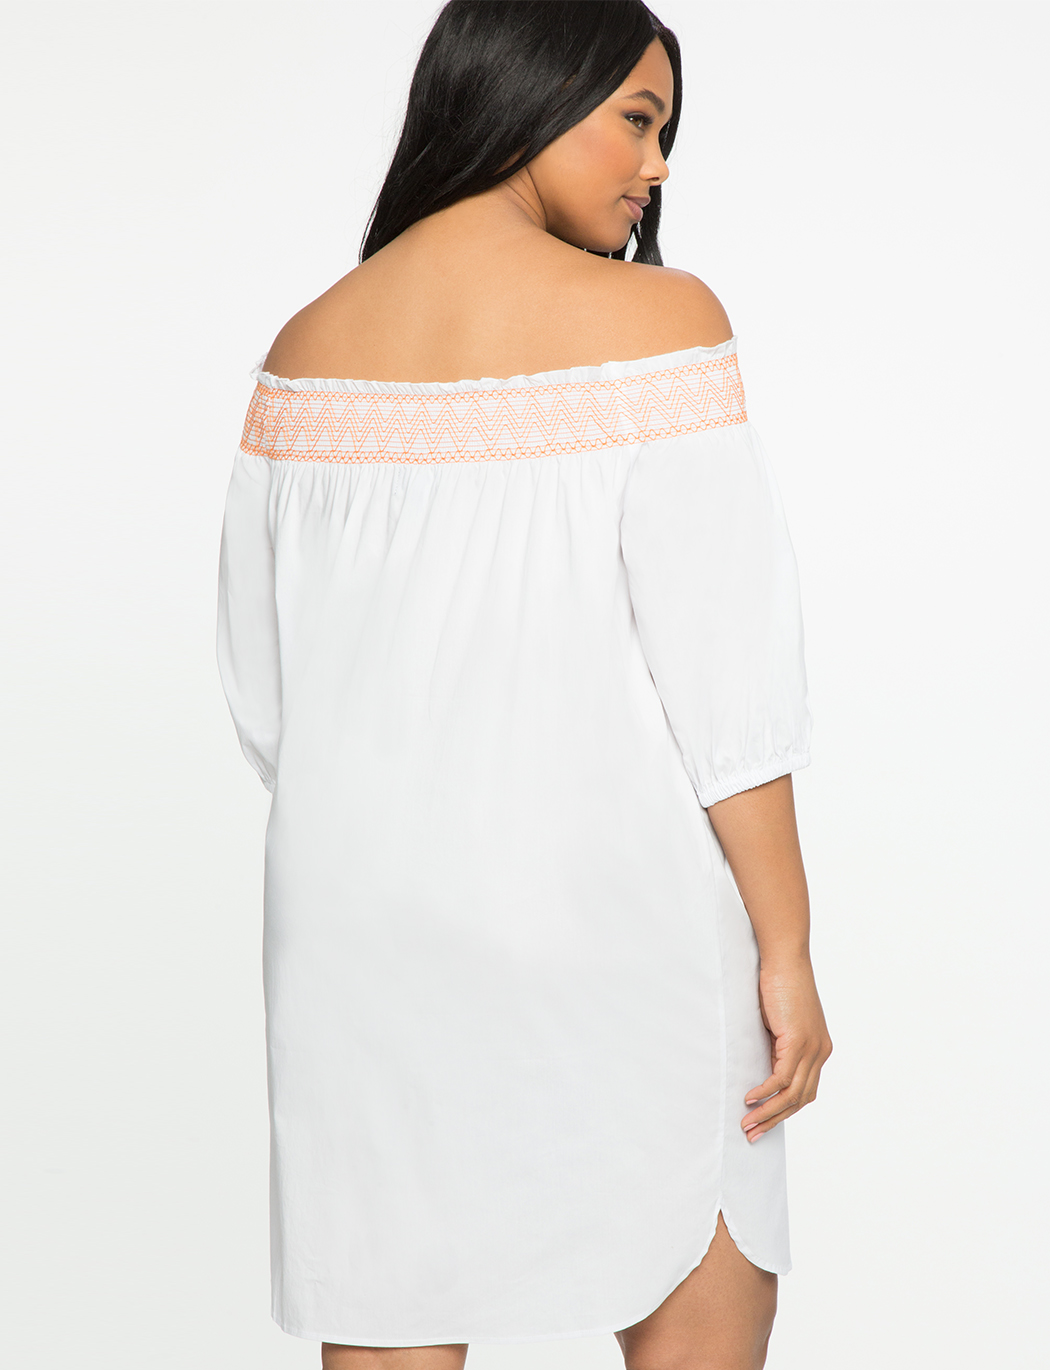 Off the Shoulder Dress with Contrast Stitching